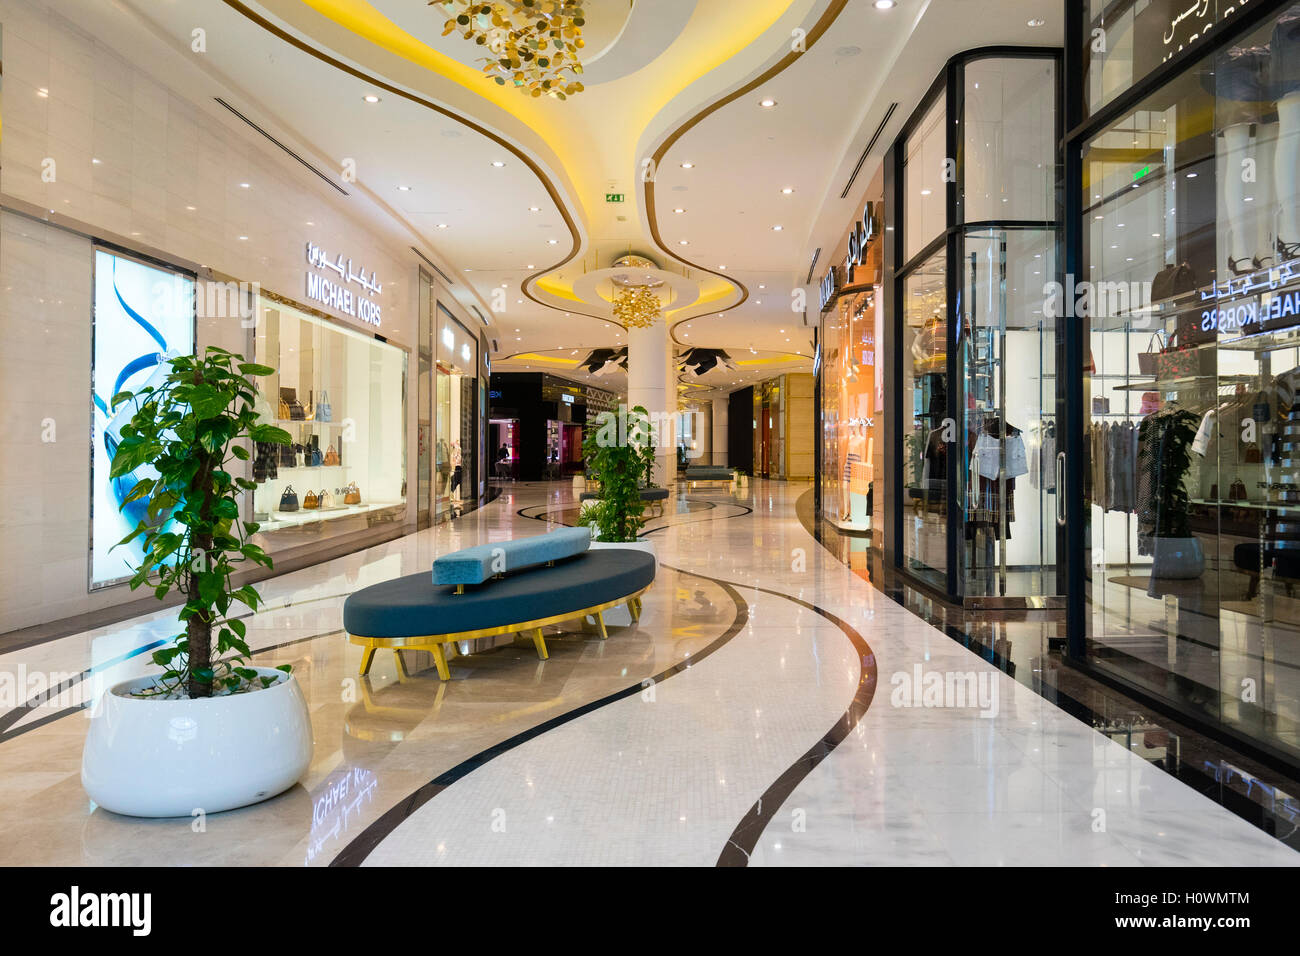 Luxury fashion boutiques inside The Lagoona Shopping Mall in Doha, Qatar - Stock Image